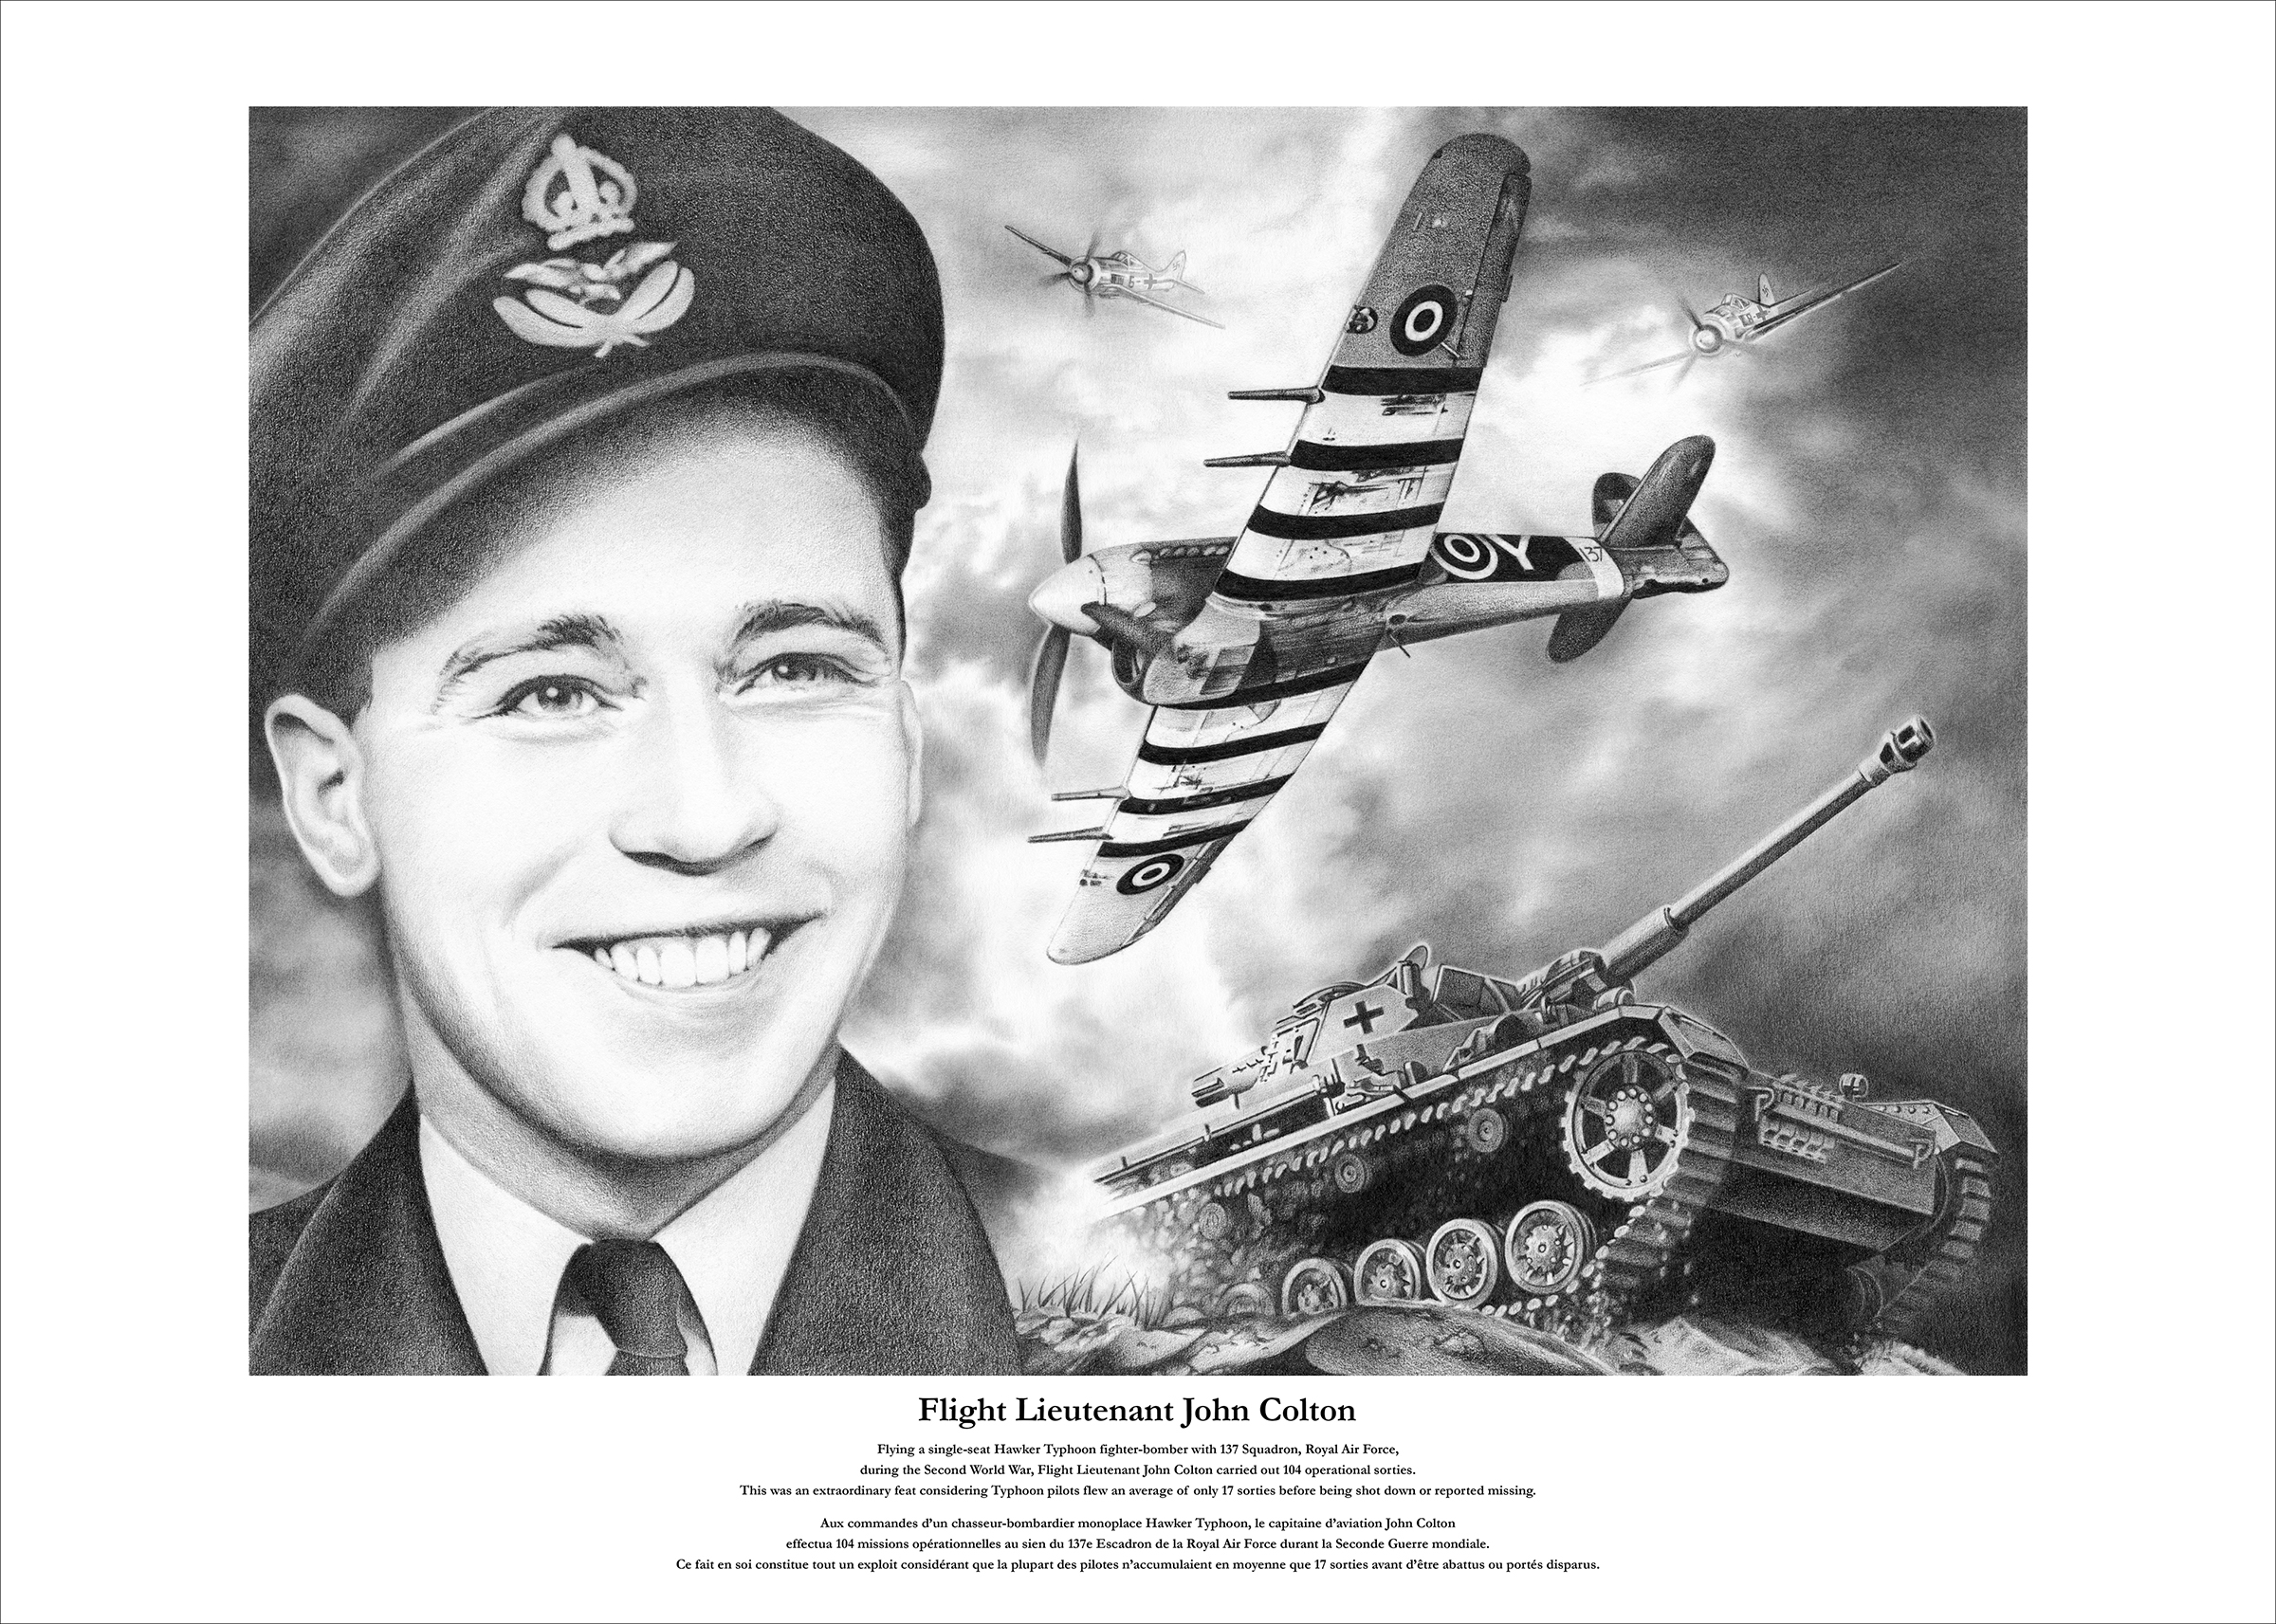 A black and white pen and ink montage of the head and shoulders of a man in military uniform, three aircraft and a tank.